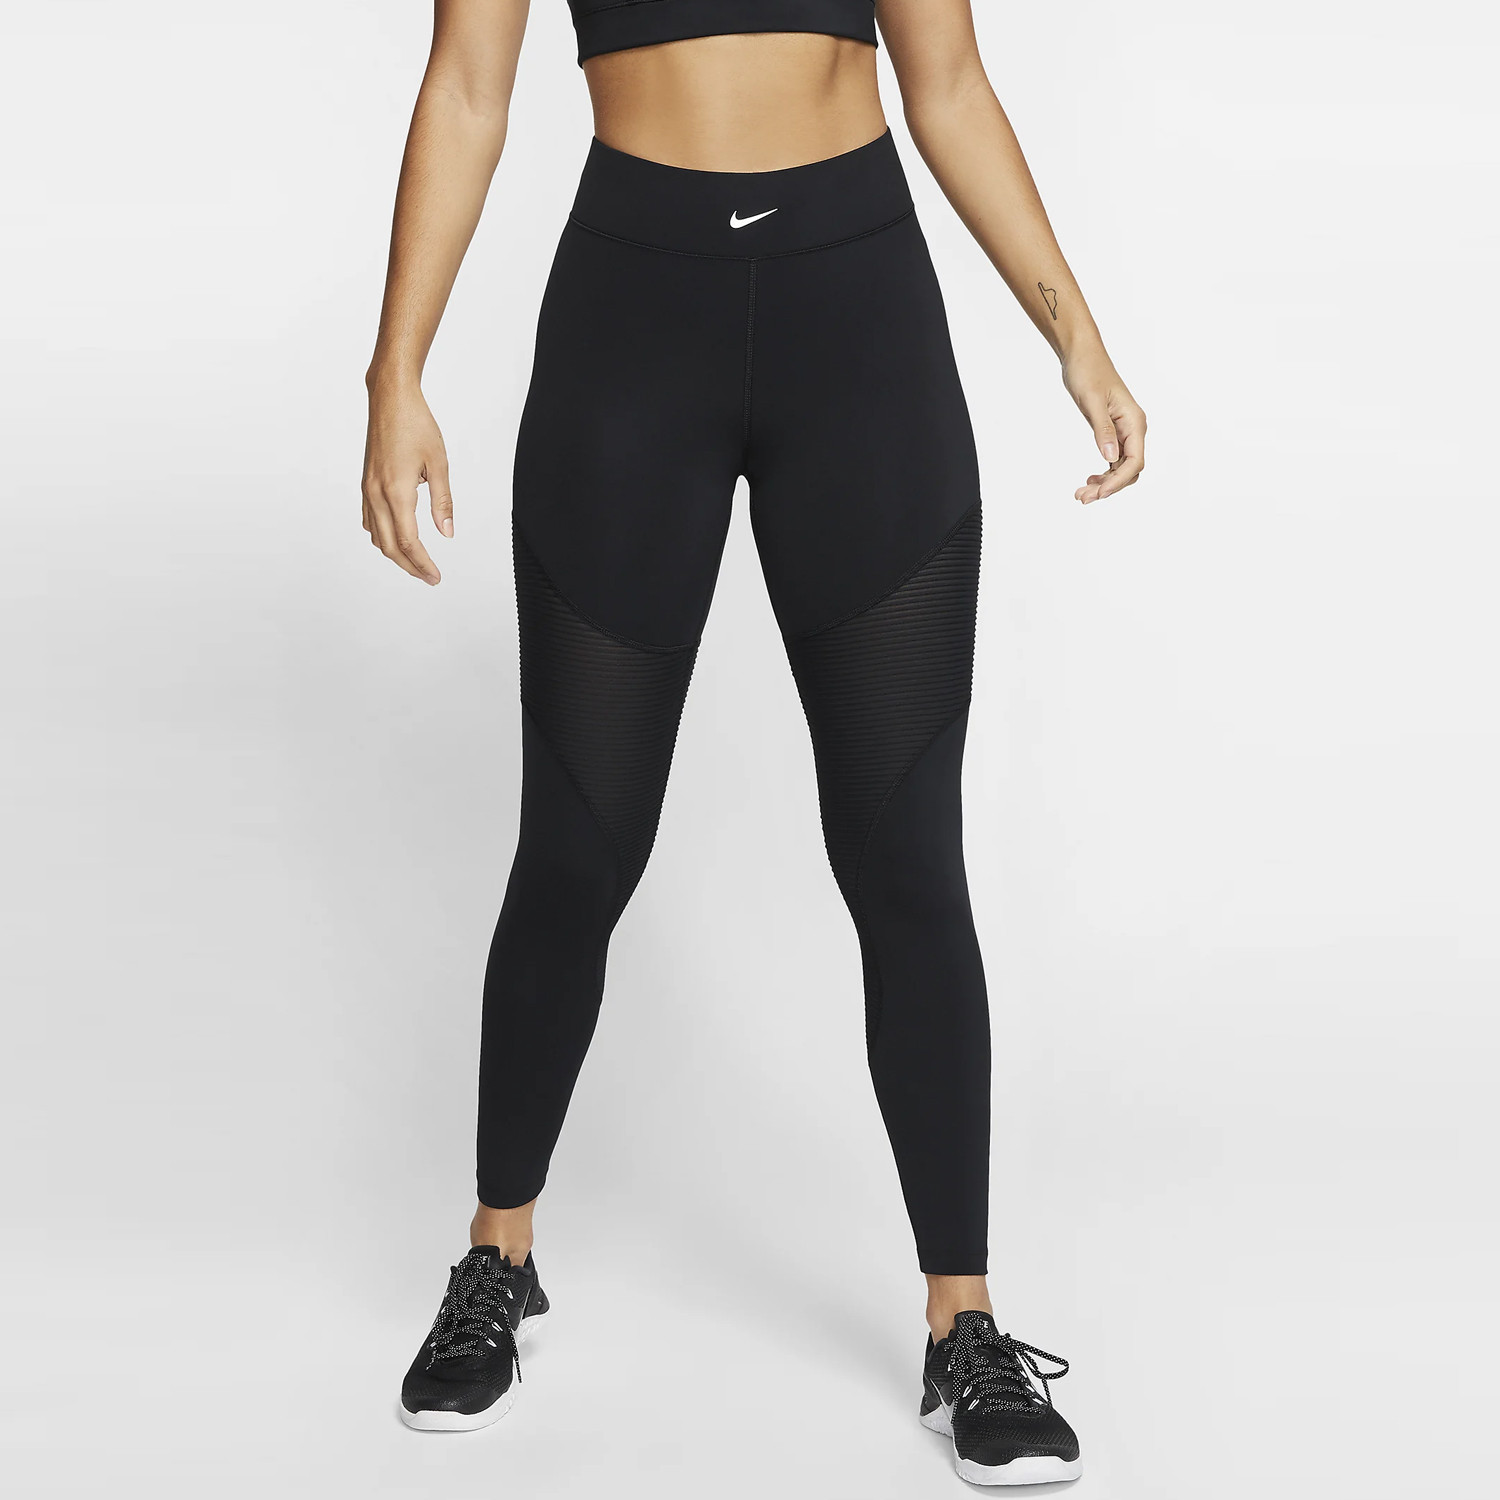 Nike Pro Aeroadapt Women's Tights (9000044040_11816)